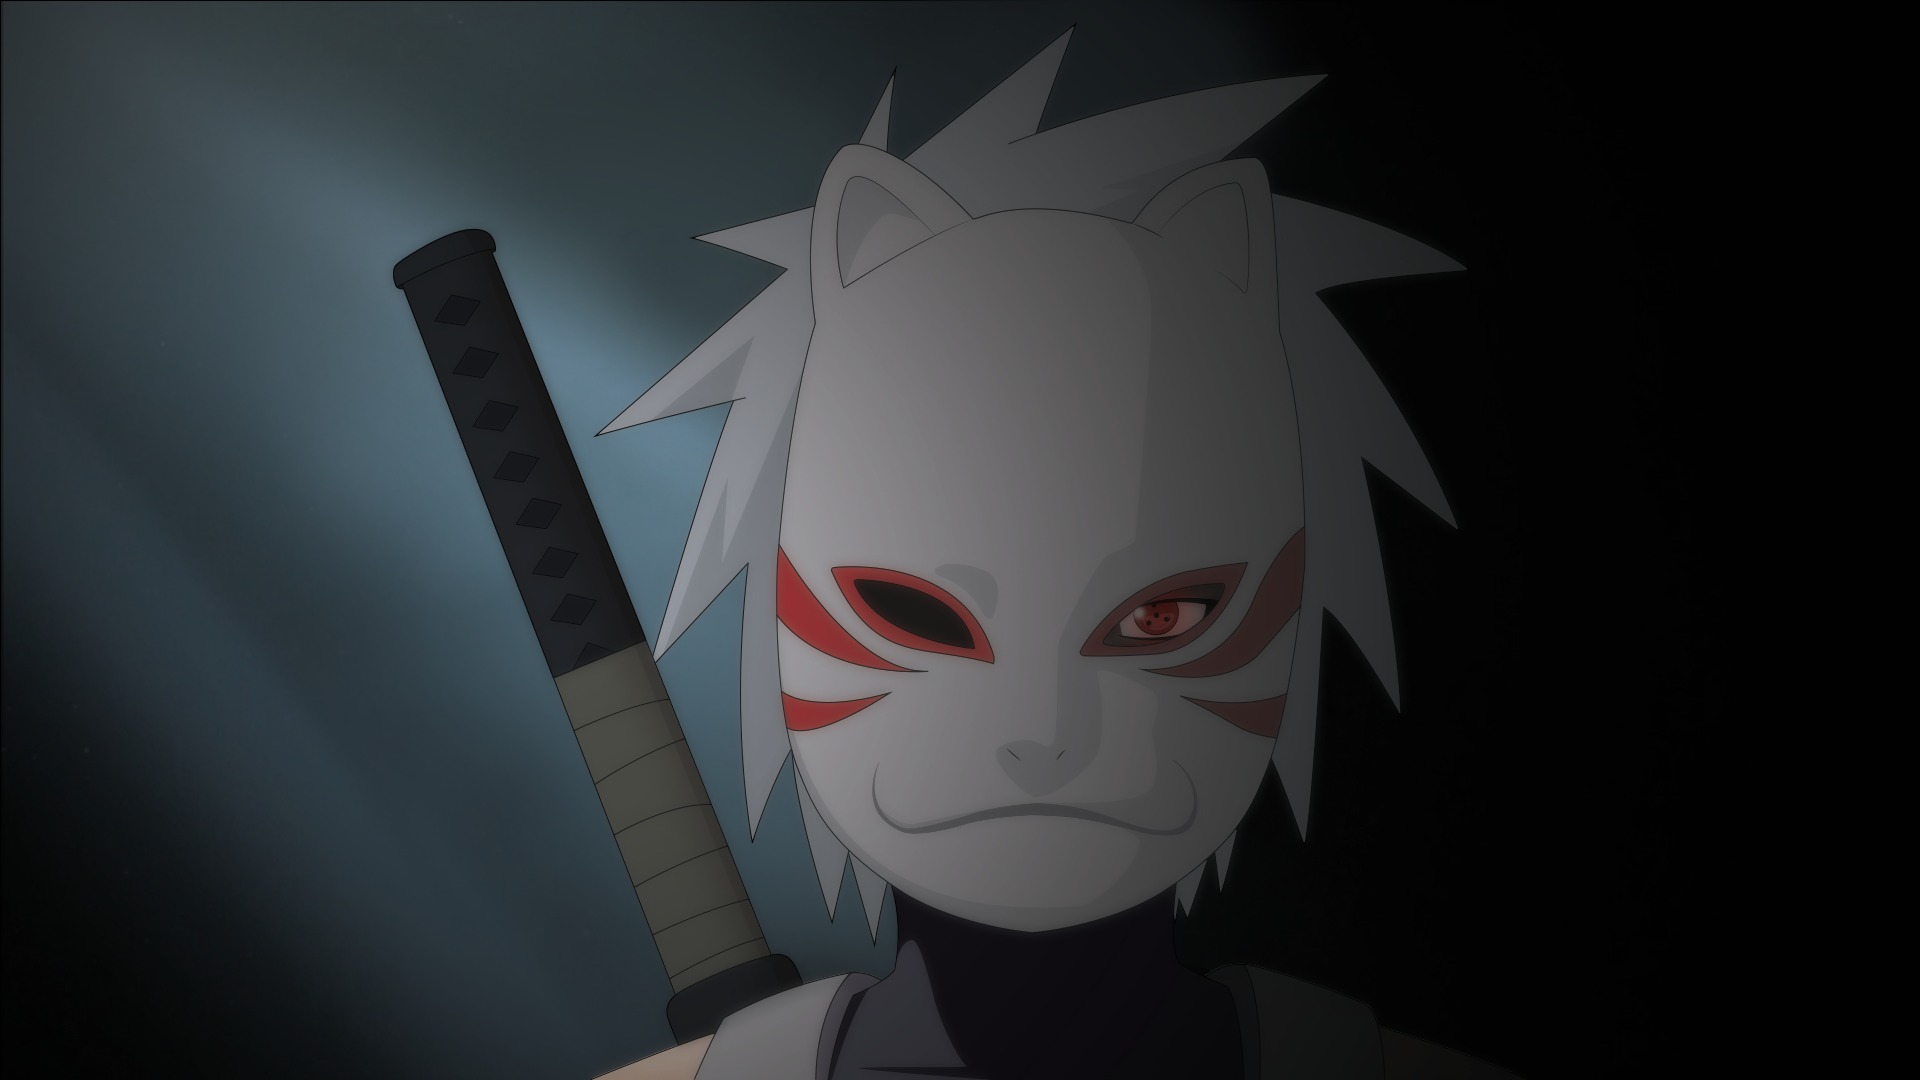 kakashi Anbu Computer Wallpapers, Desktop Backgrounds ...